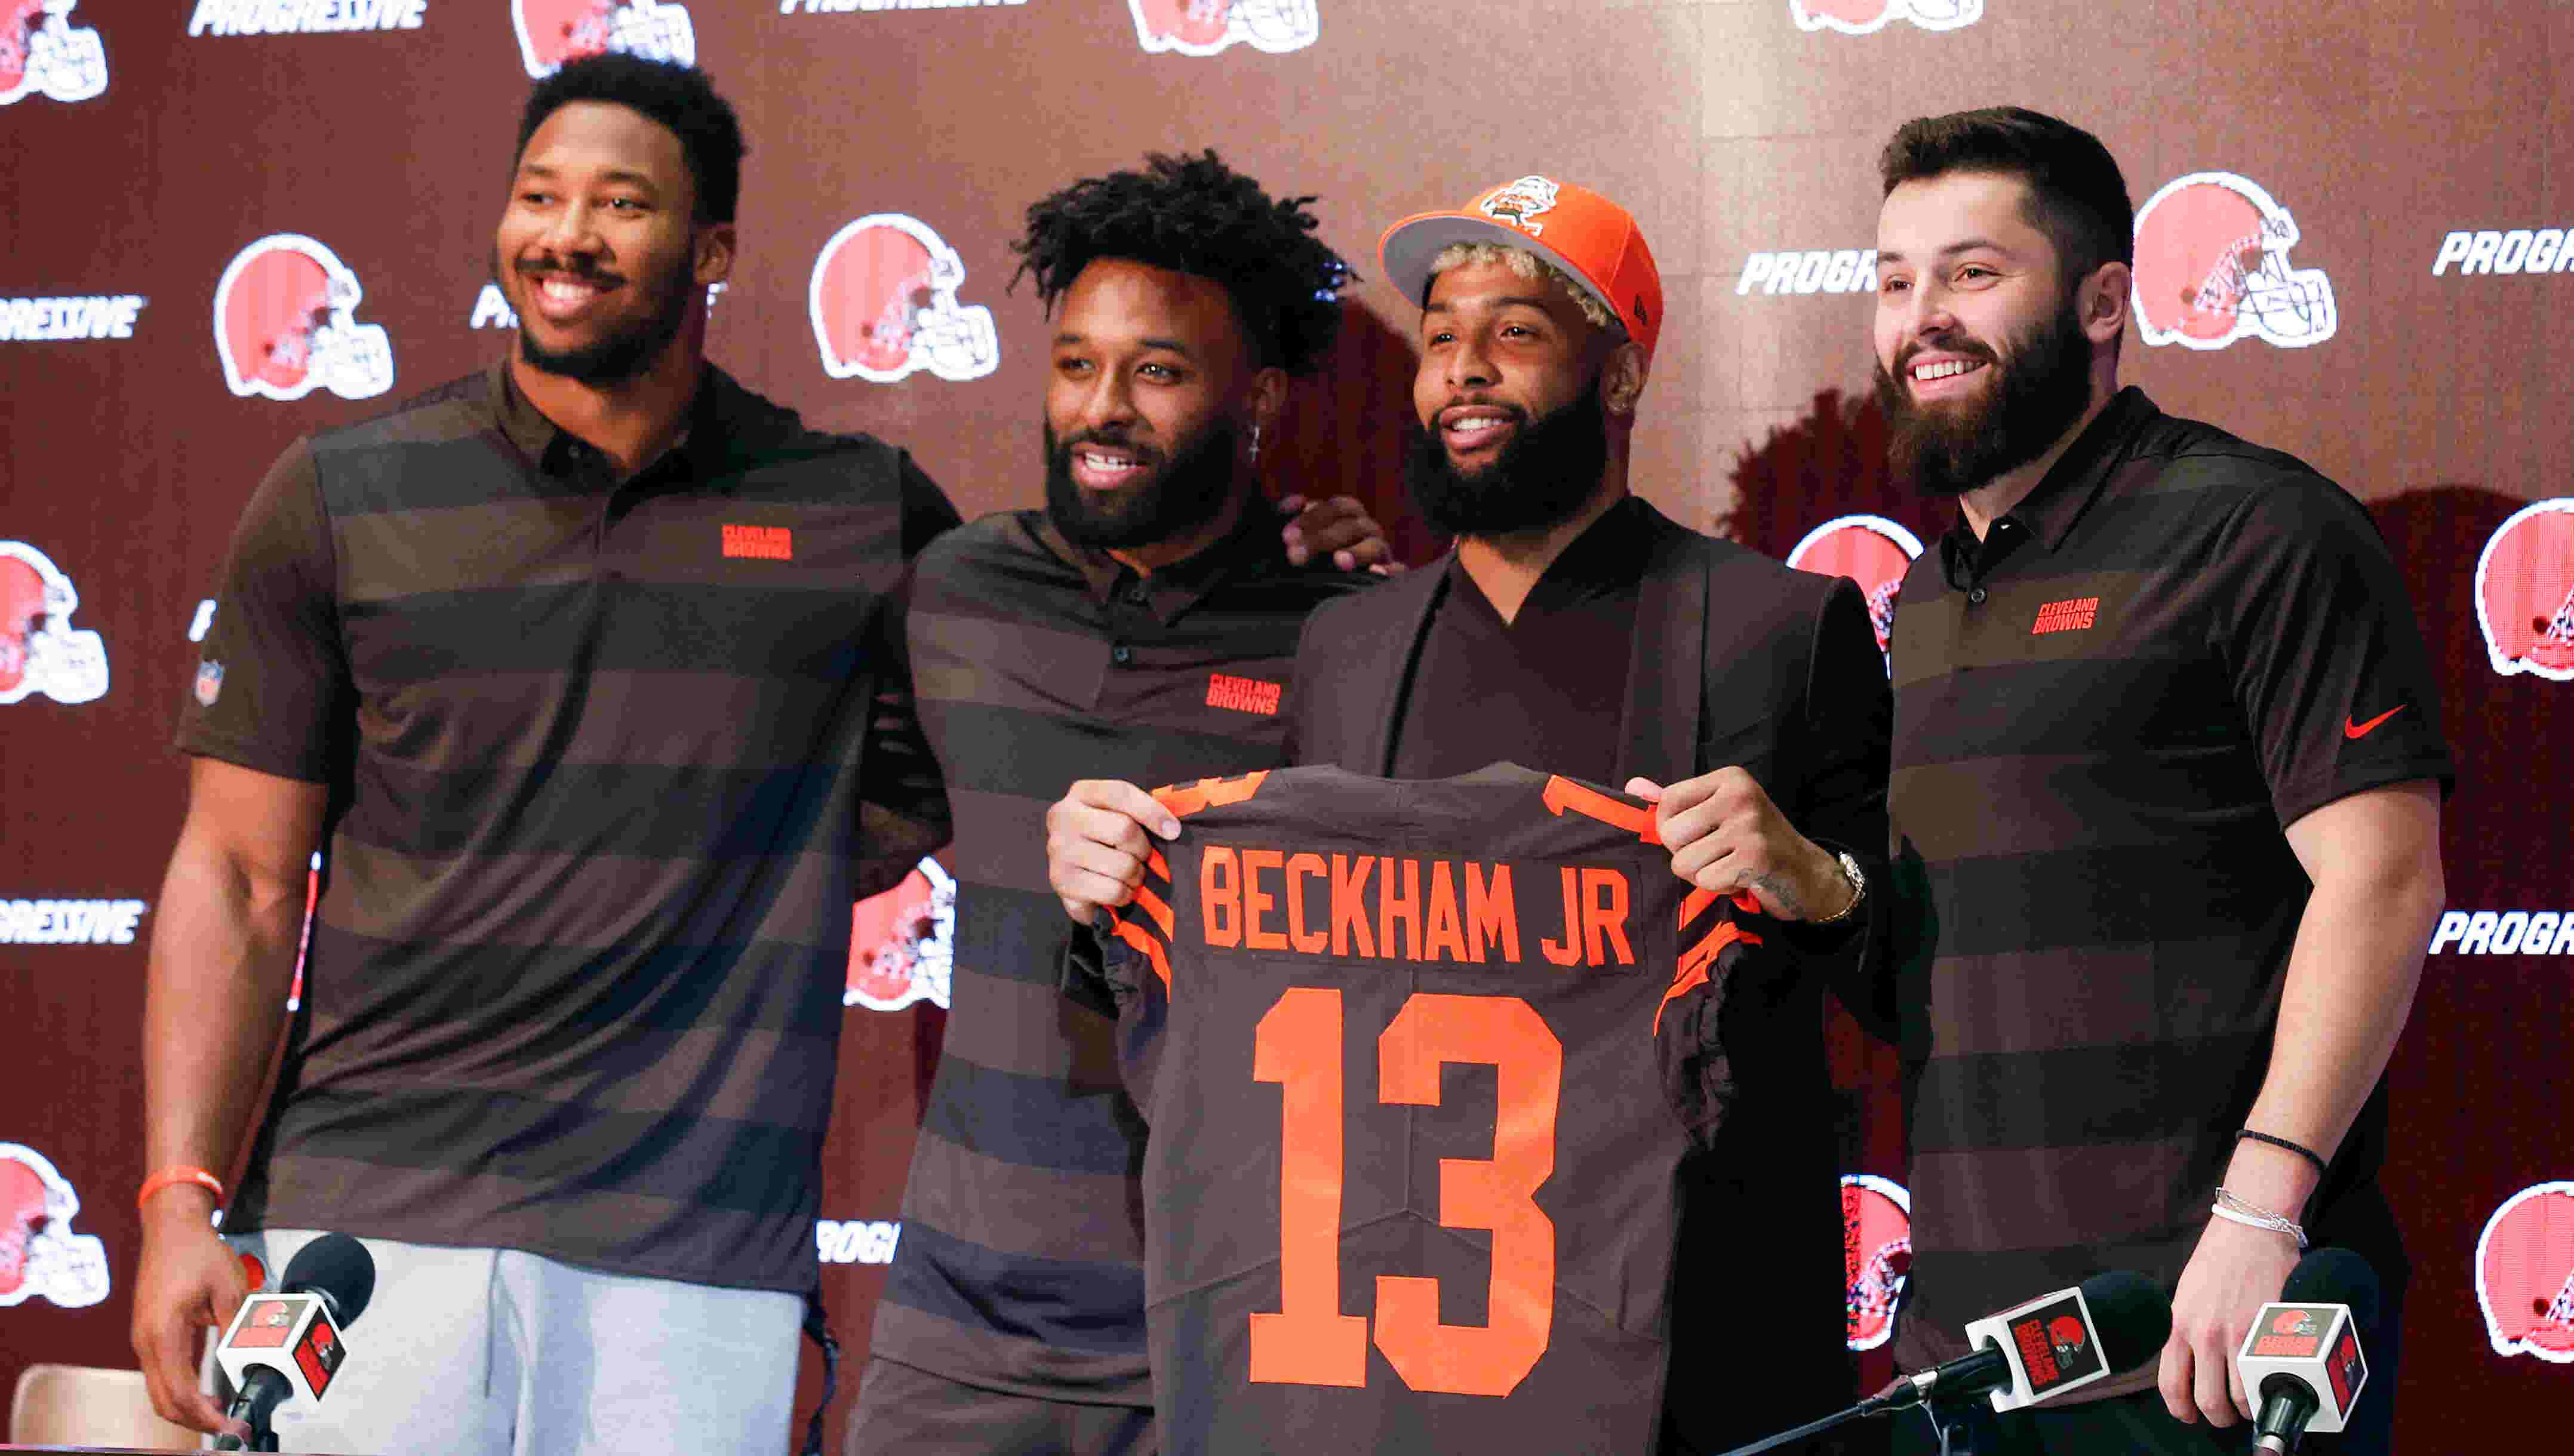 AFC draft overreactions: All eyes will be on the Browns